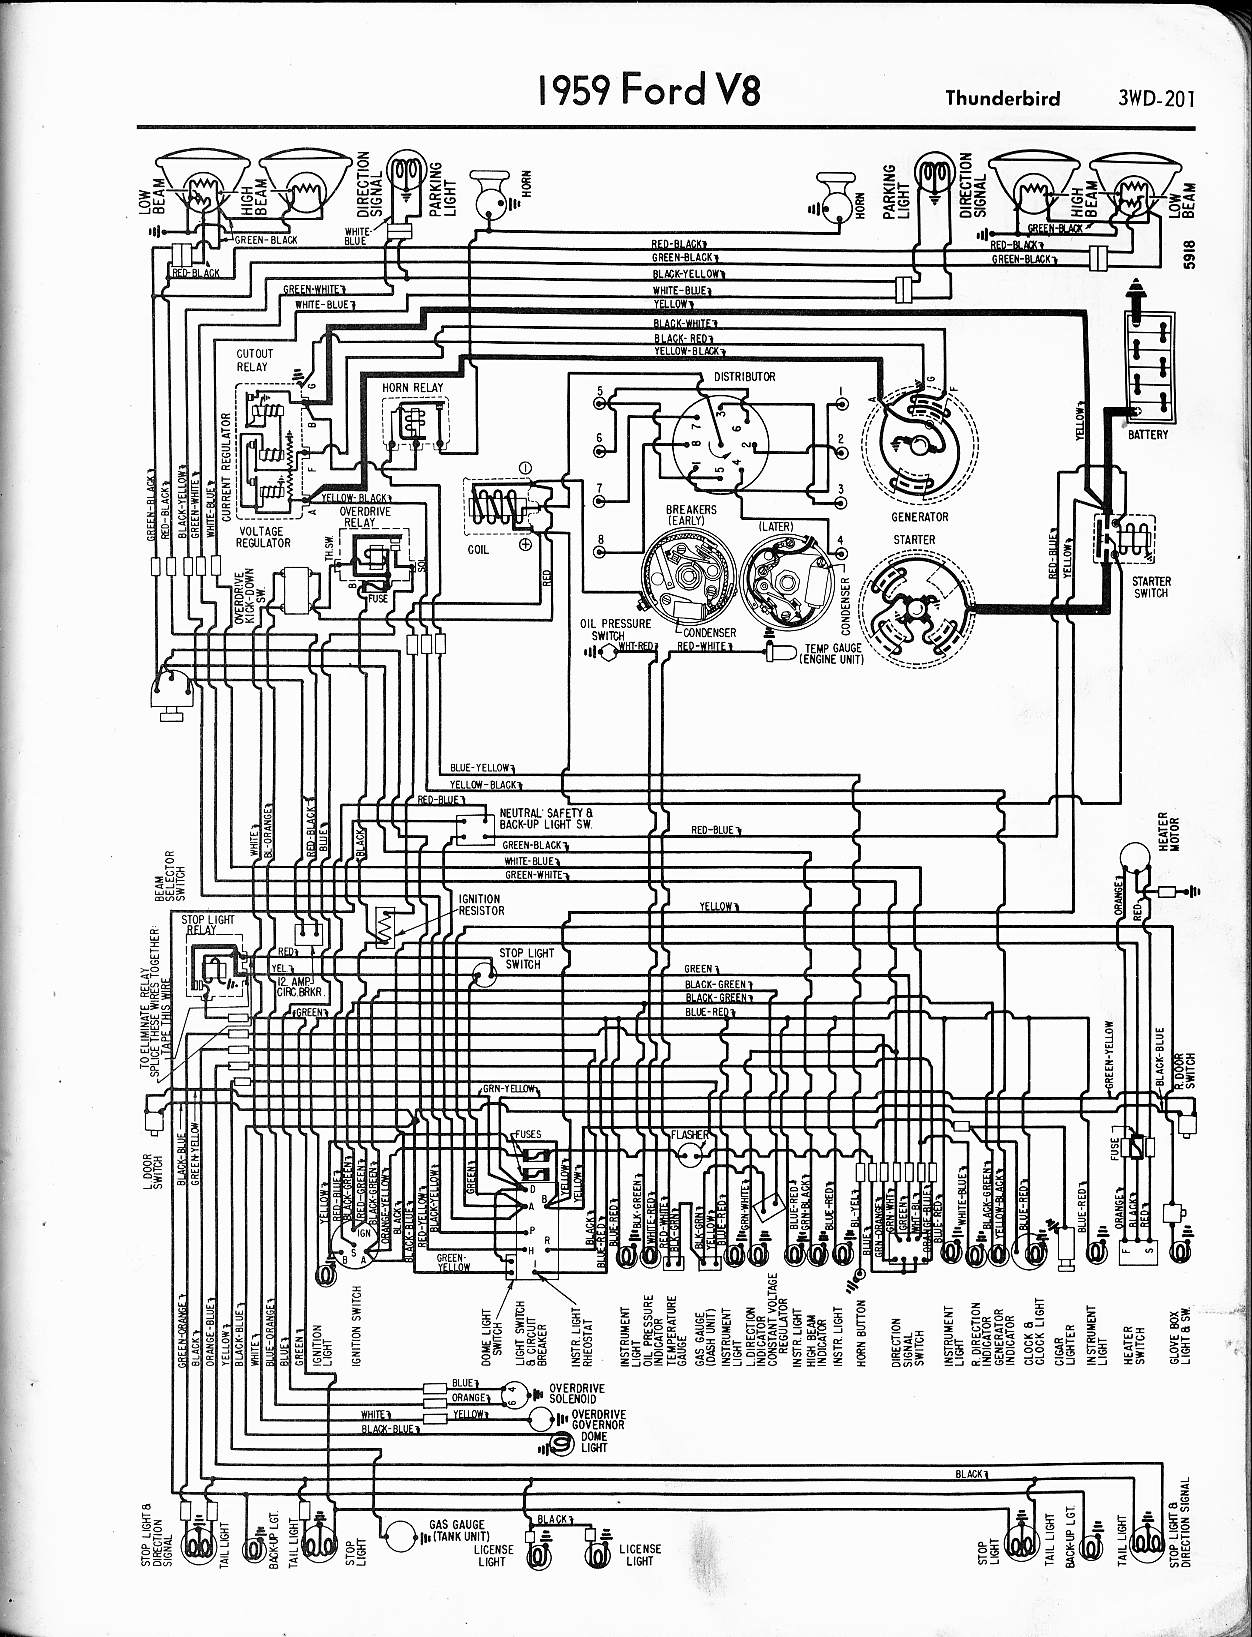 57 65 ford wiring diagrams rh oldcarmanualproject com 1970 Ford F100 Wiring Diagram 1970 Ford F100 Wiring Diagram